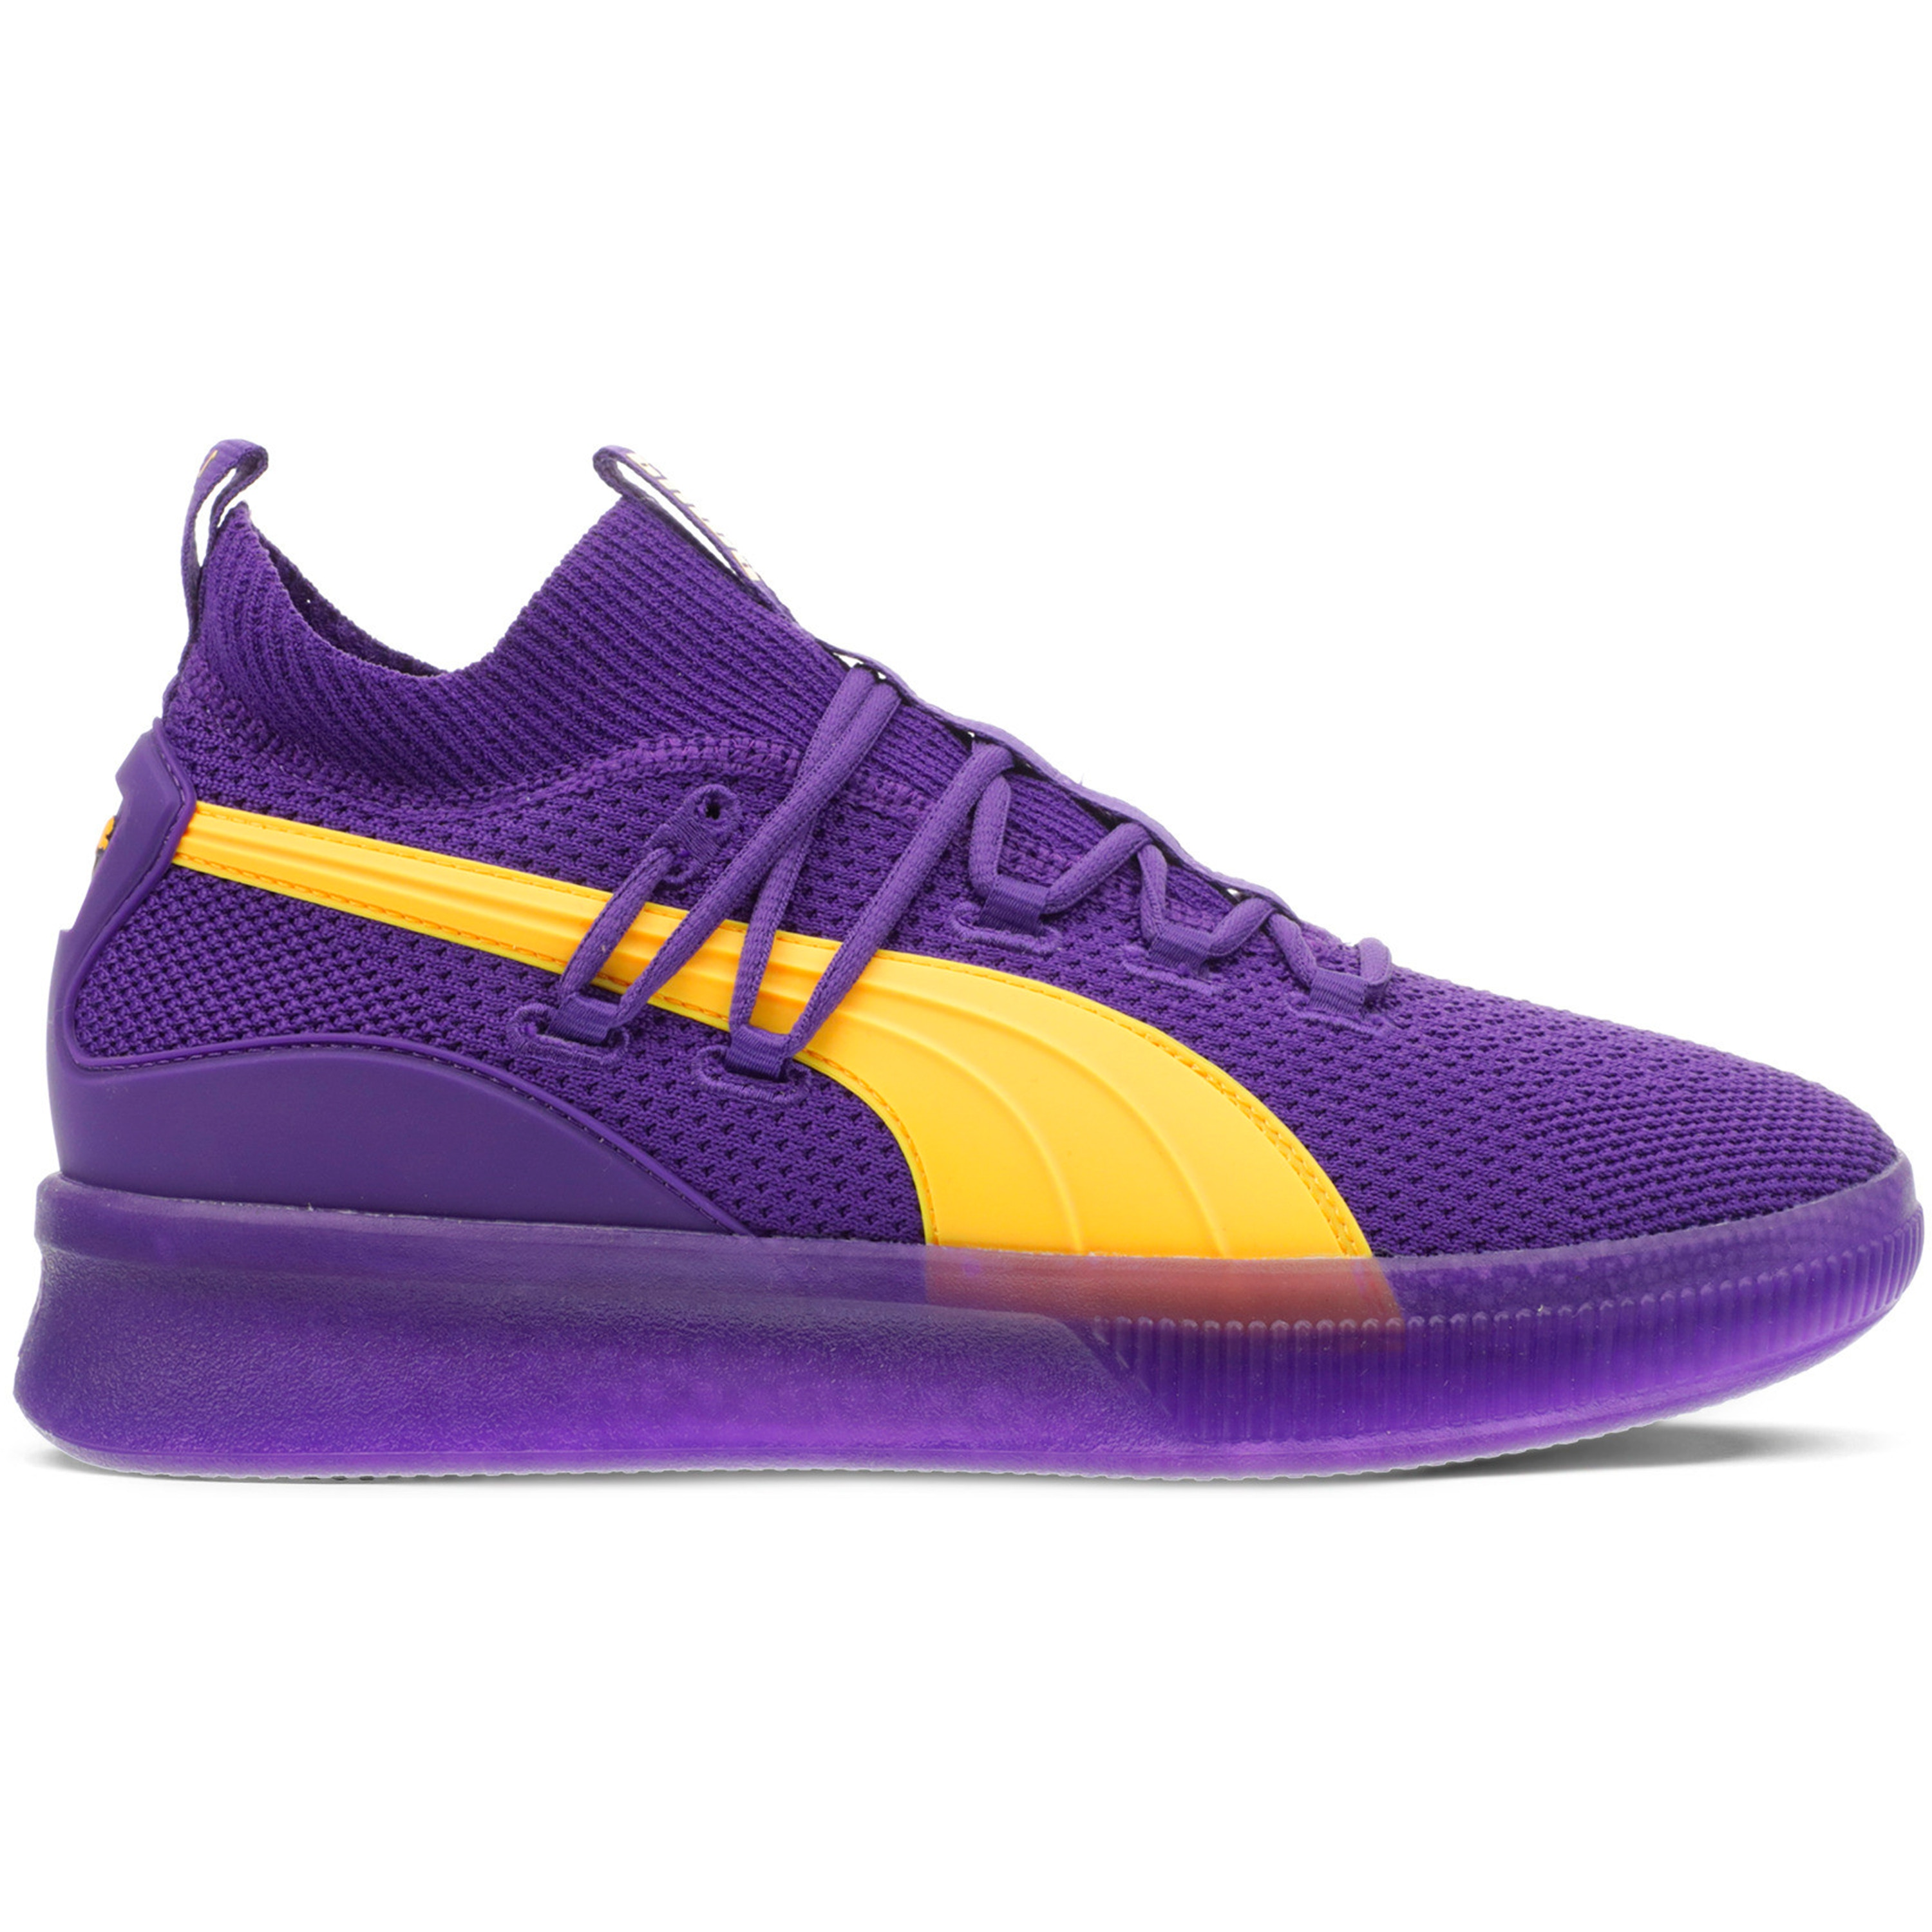 Puma Clyde Court City Pack Los Angeles Lakers (191712-04)